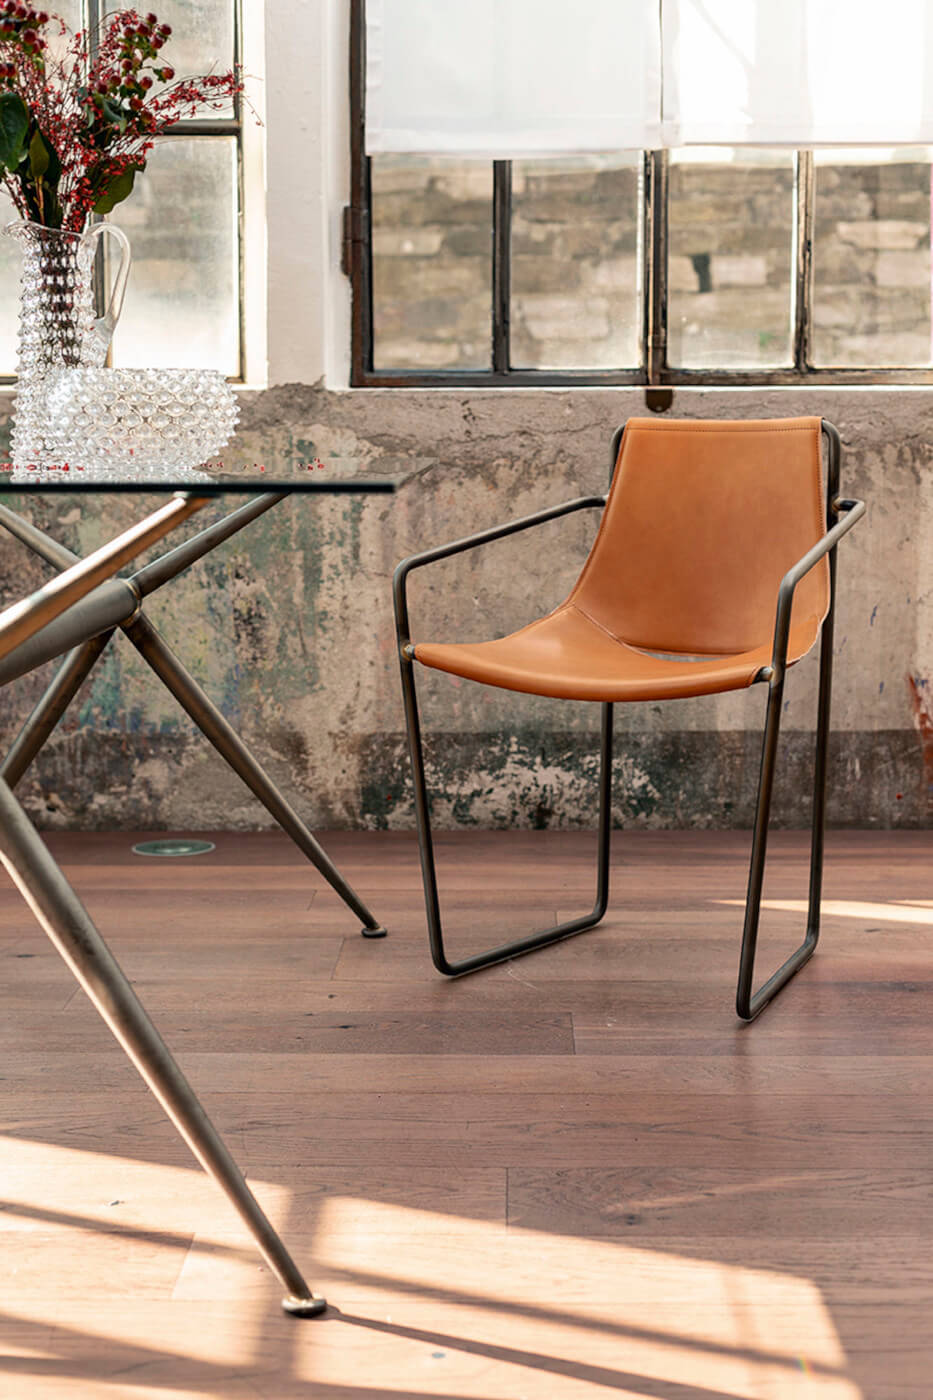 Apelle chair with armrests, seat in ocher hide and legs in brown metal